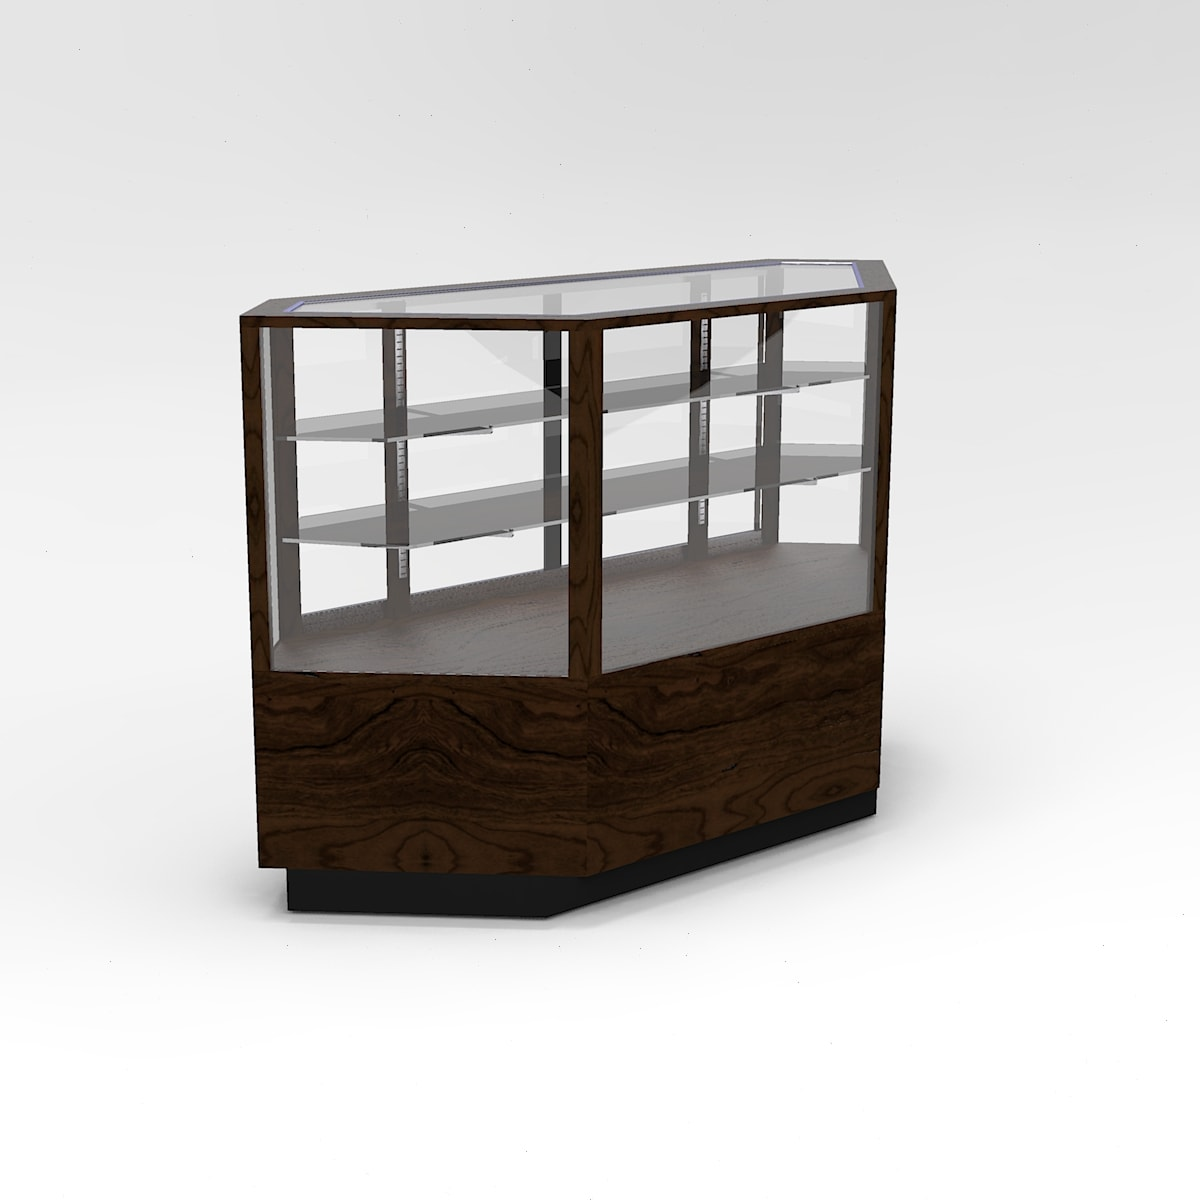 60 Inch Full Vision Contemporary Inside Corner Horizontal Display Case To Purchase